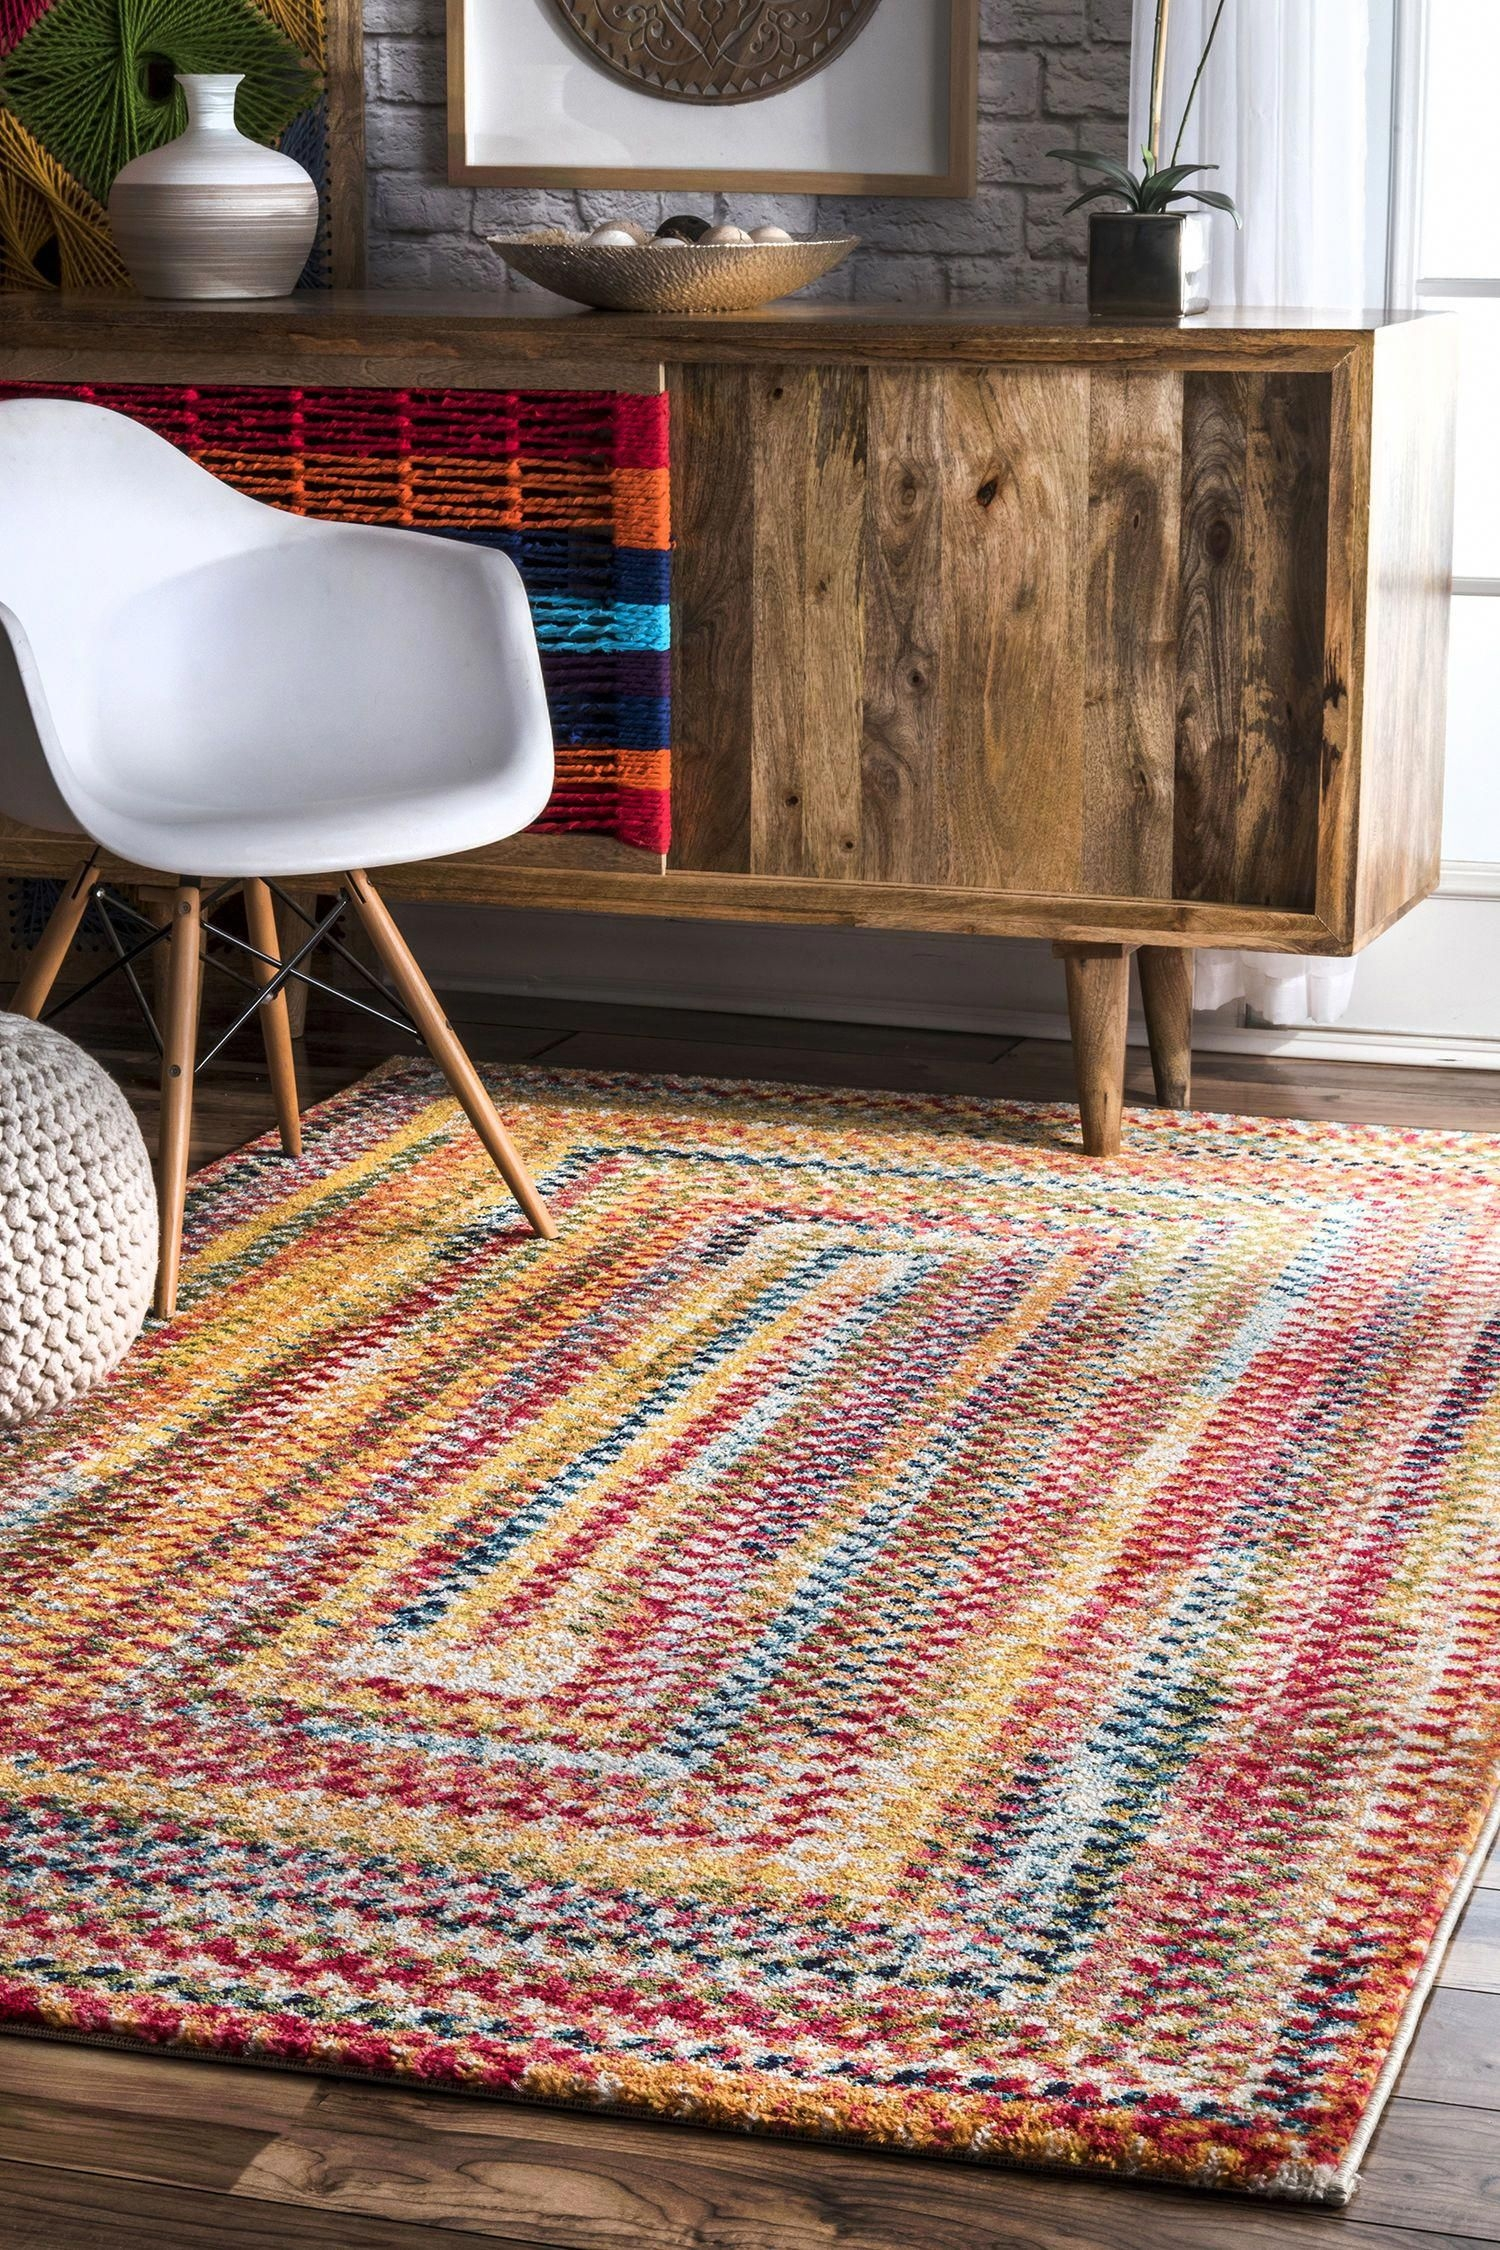 Comely Home Decor Ideas Living Room Modern Boho area Rug with Plum Accents On Nice-looking Hargis Labyrinth Color Light Multi Size 5 X 8 On Home Decor Ideas Living Room Modern Boho area Rug with Plum Accents